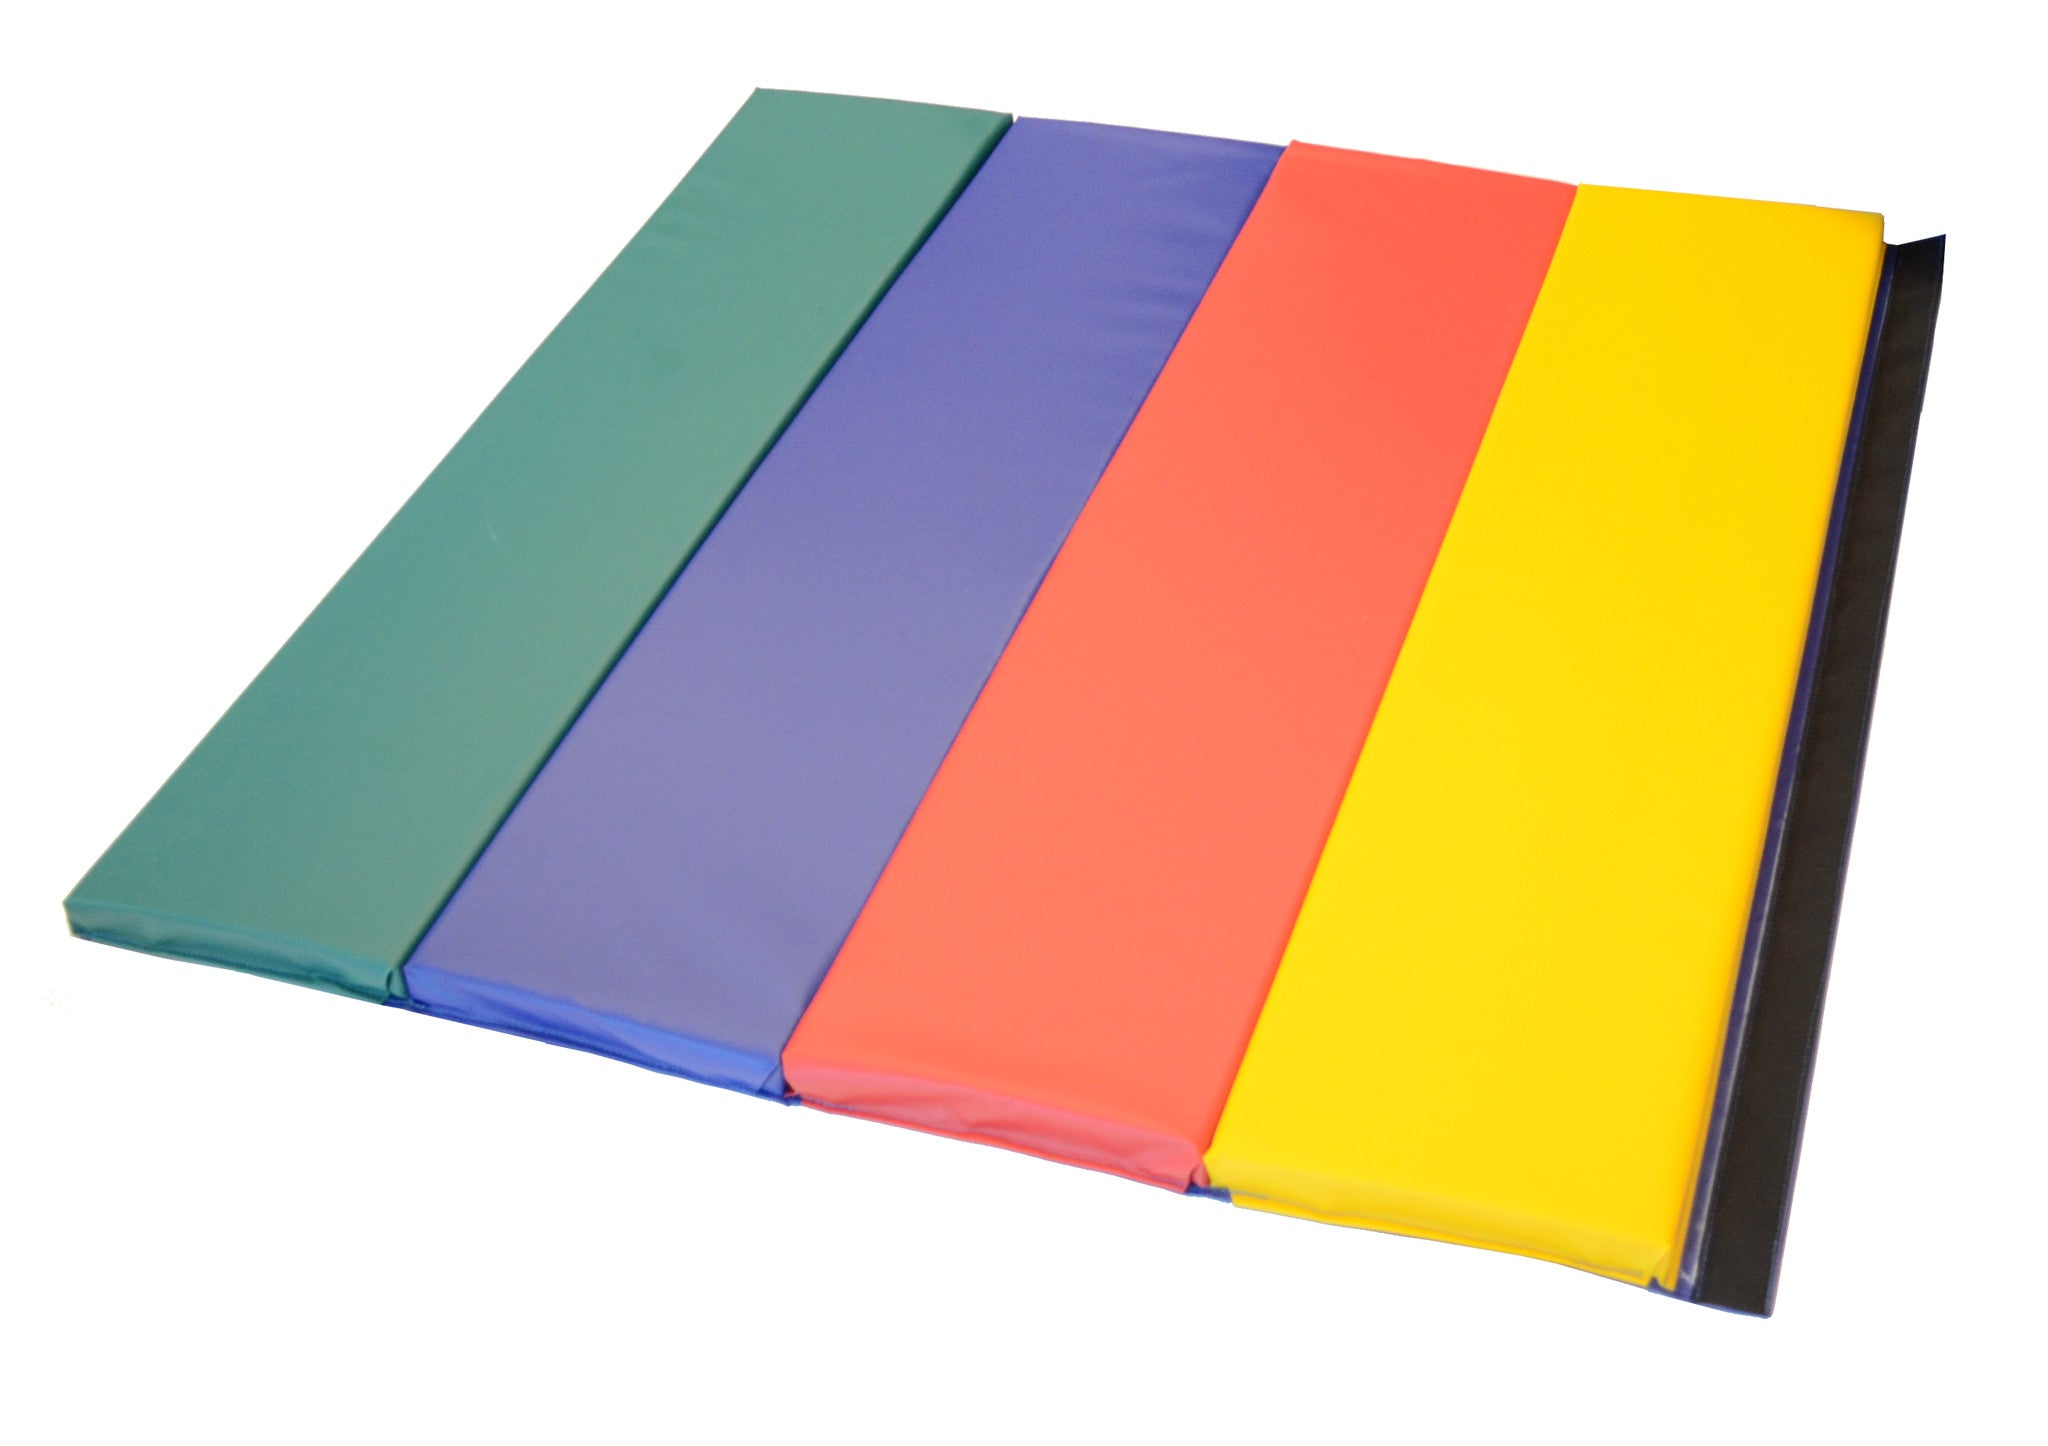 "4' x 4' x 1 3/8"" Rainbow Folding Activity Mat"